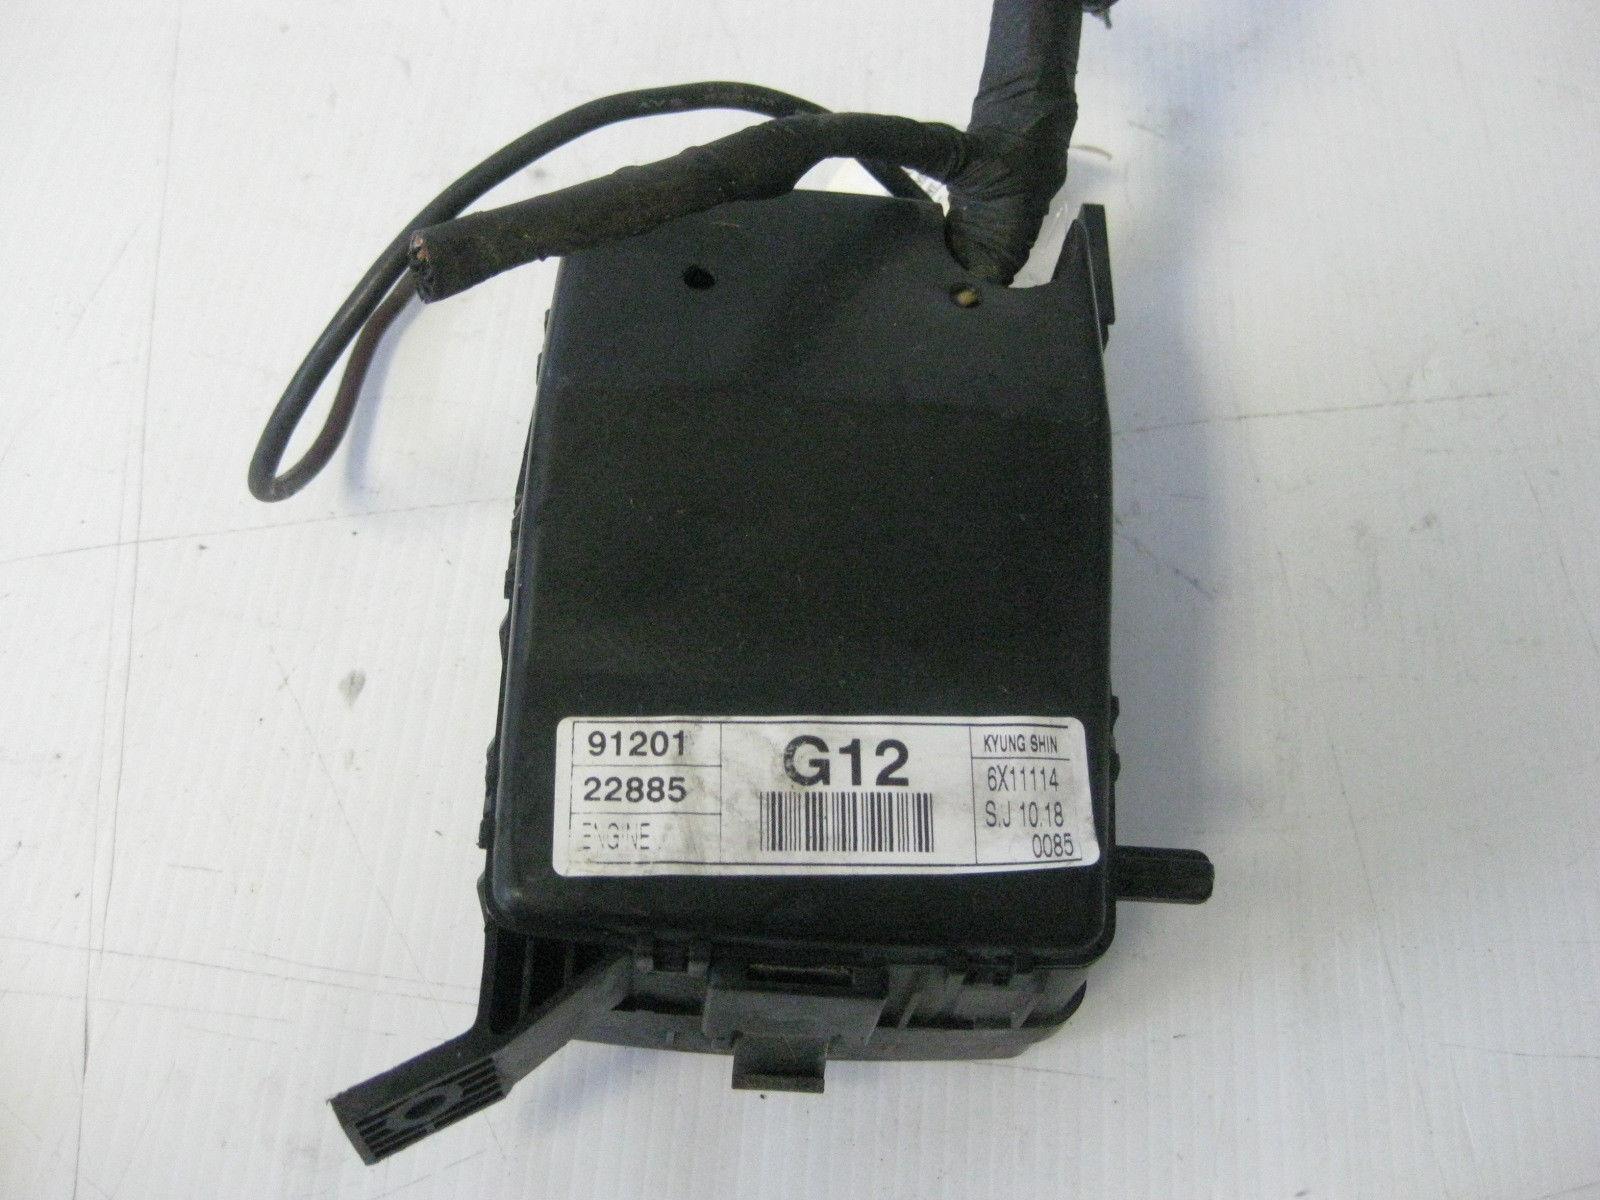 Hyundai Accent 1997 Engine Fuse Box Oem And 20 Similar Items 9120122885